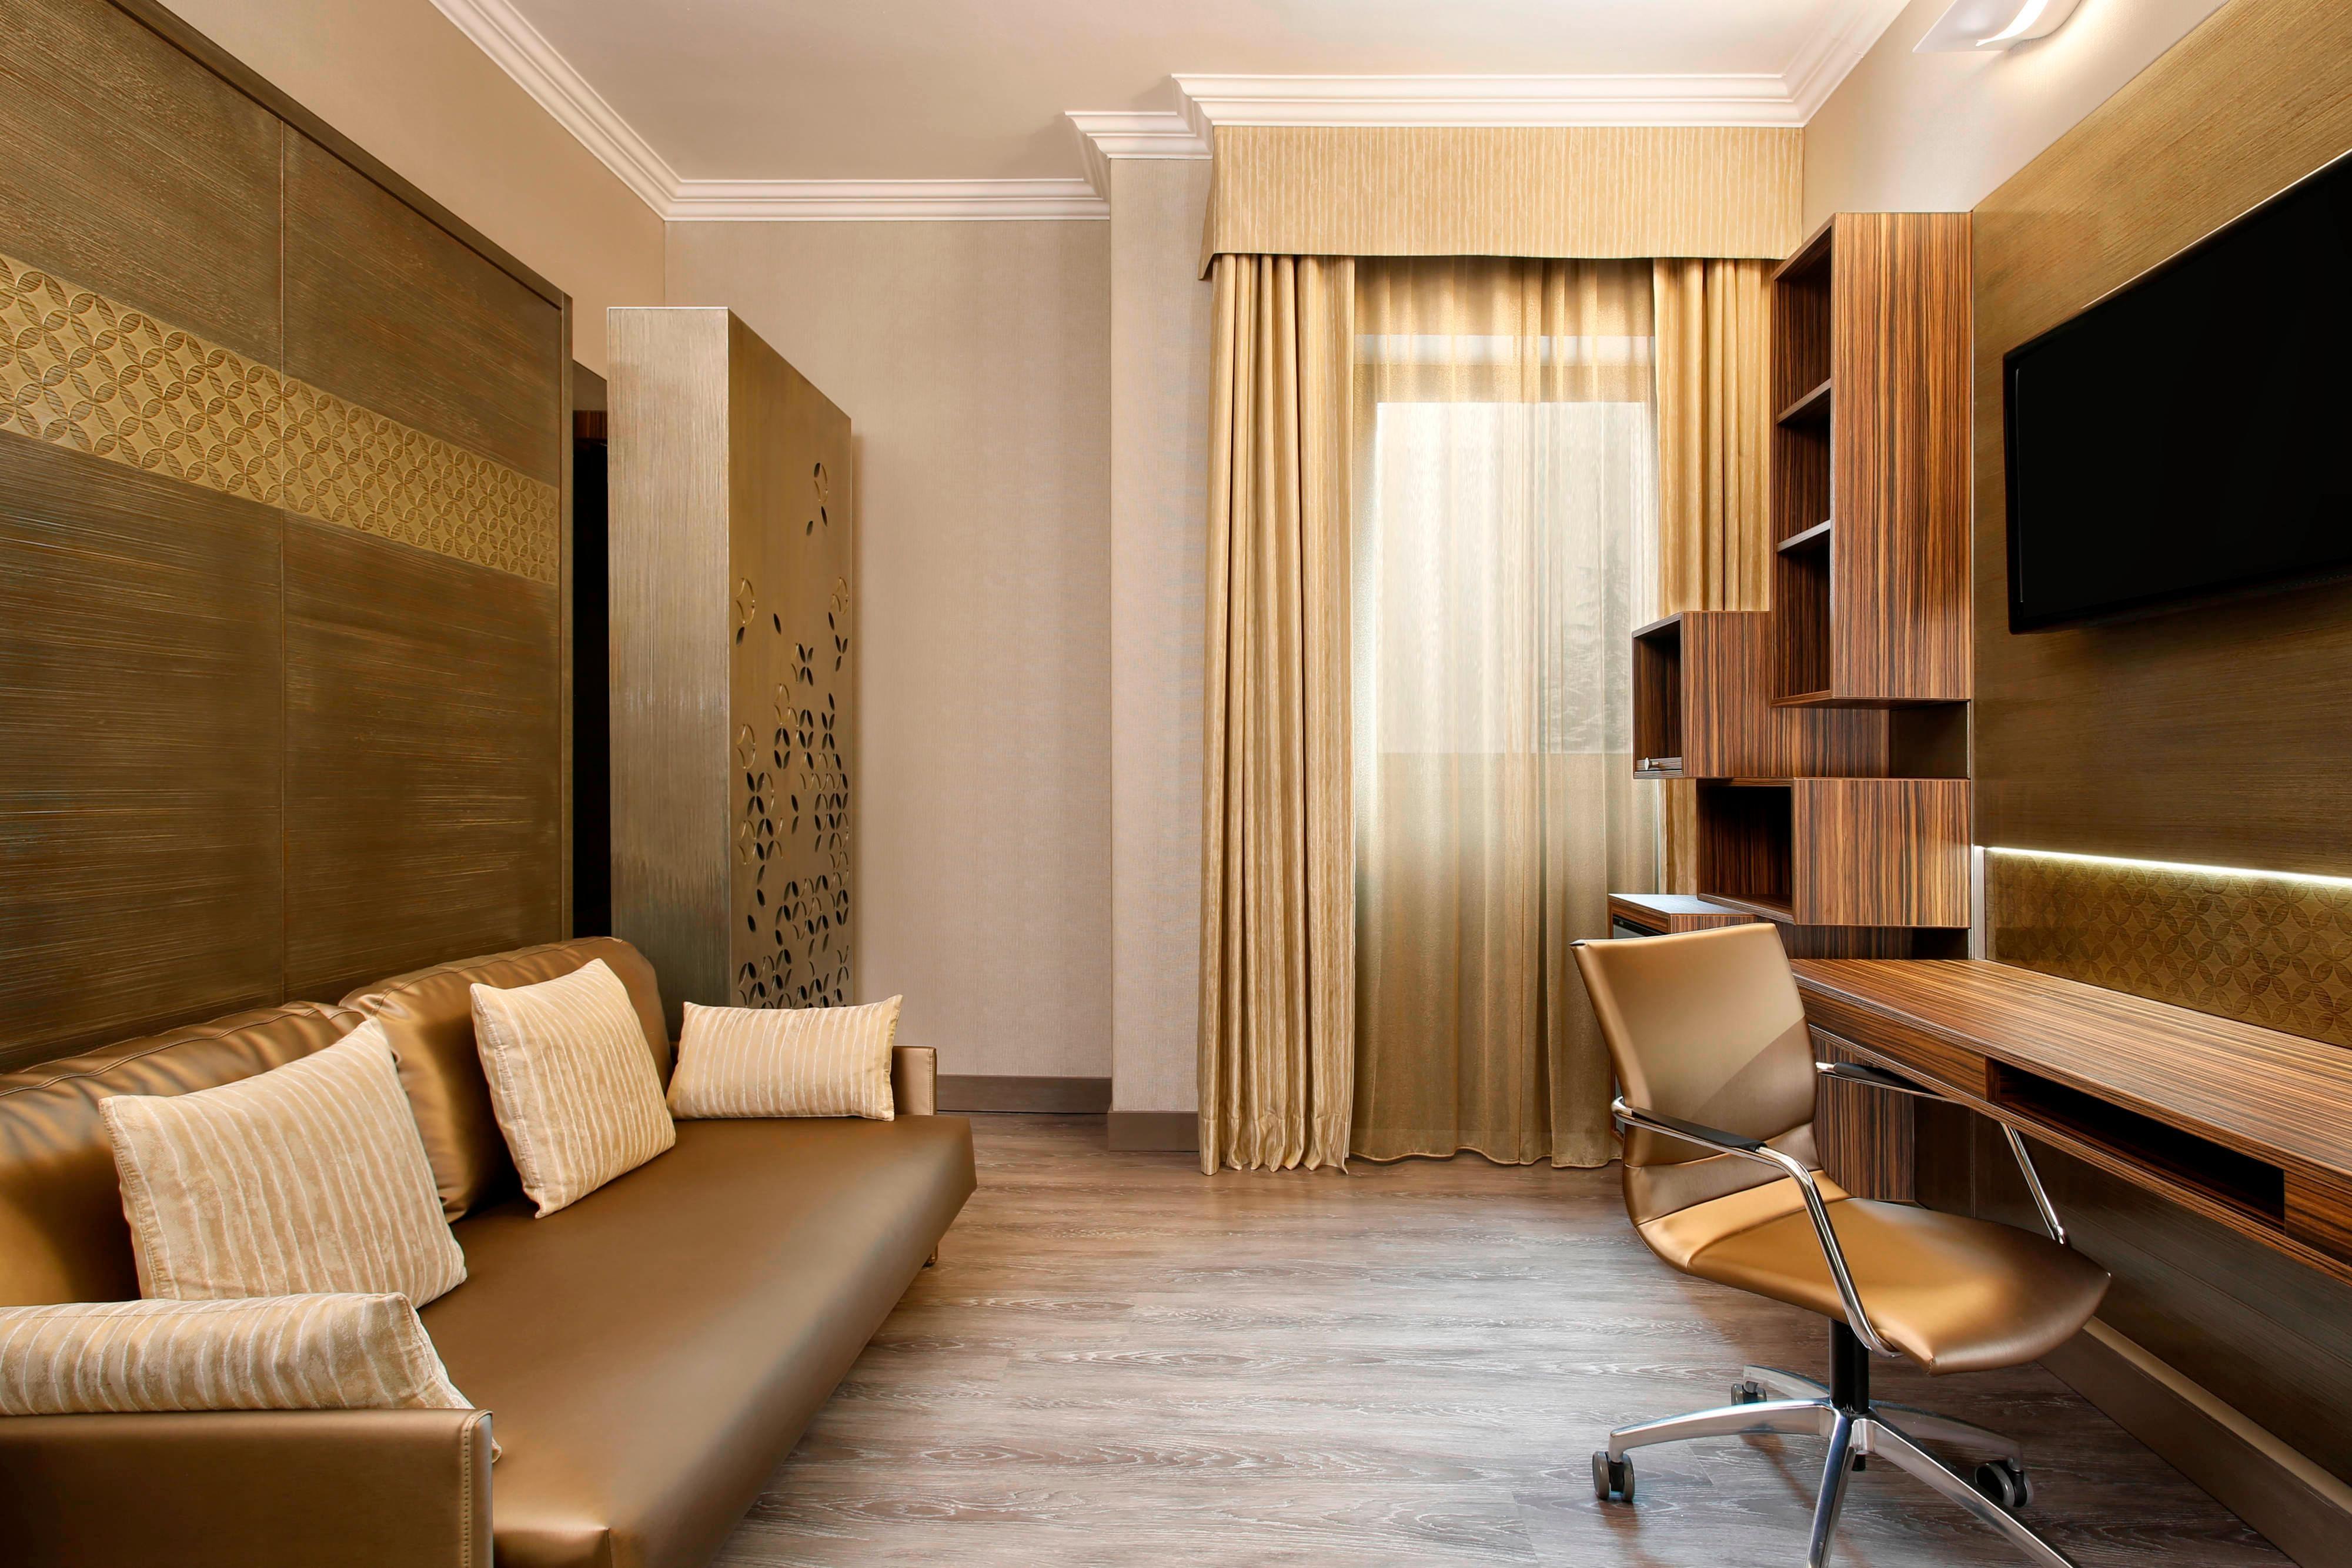 Suite relax Area